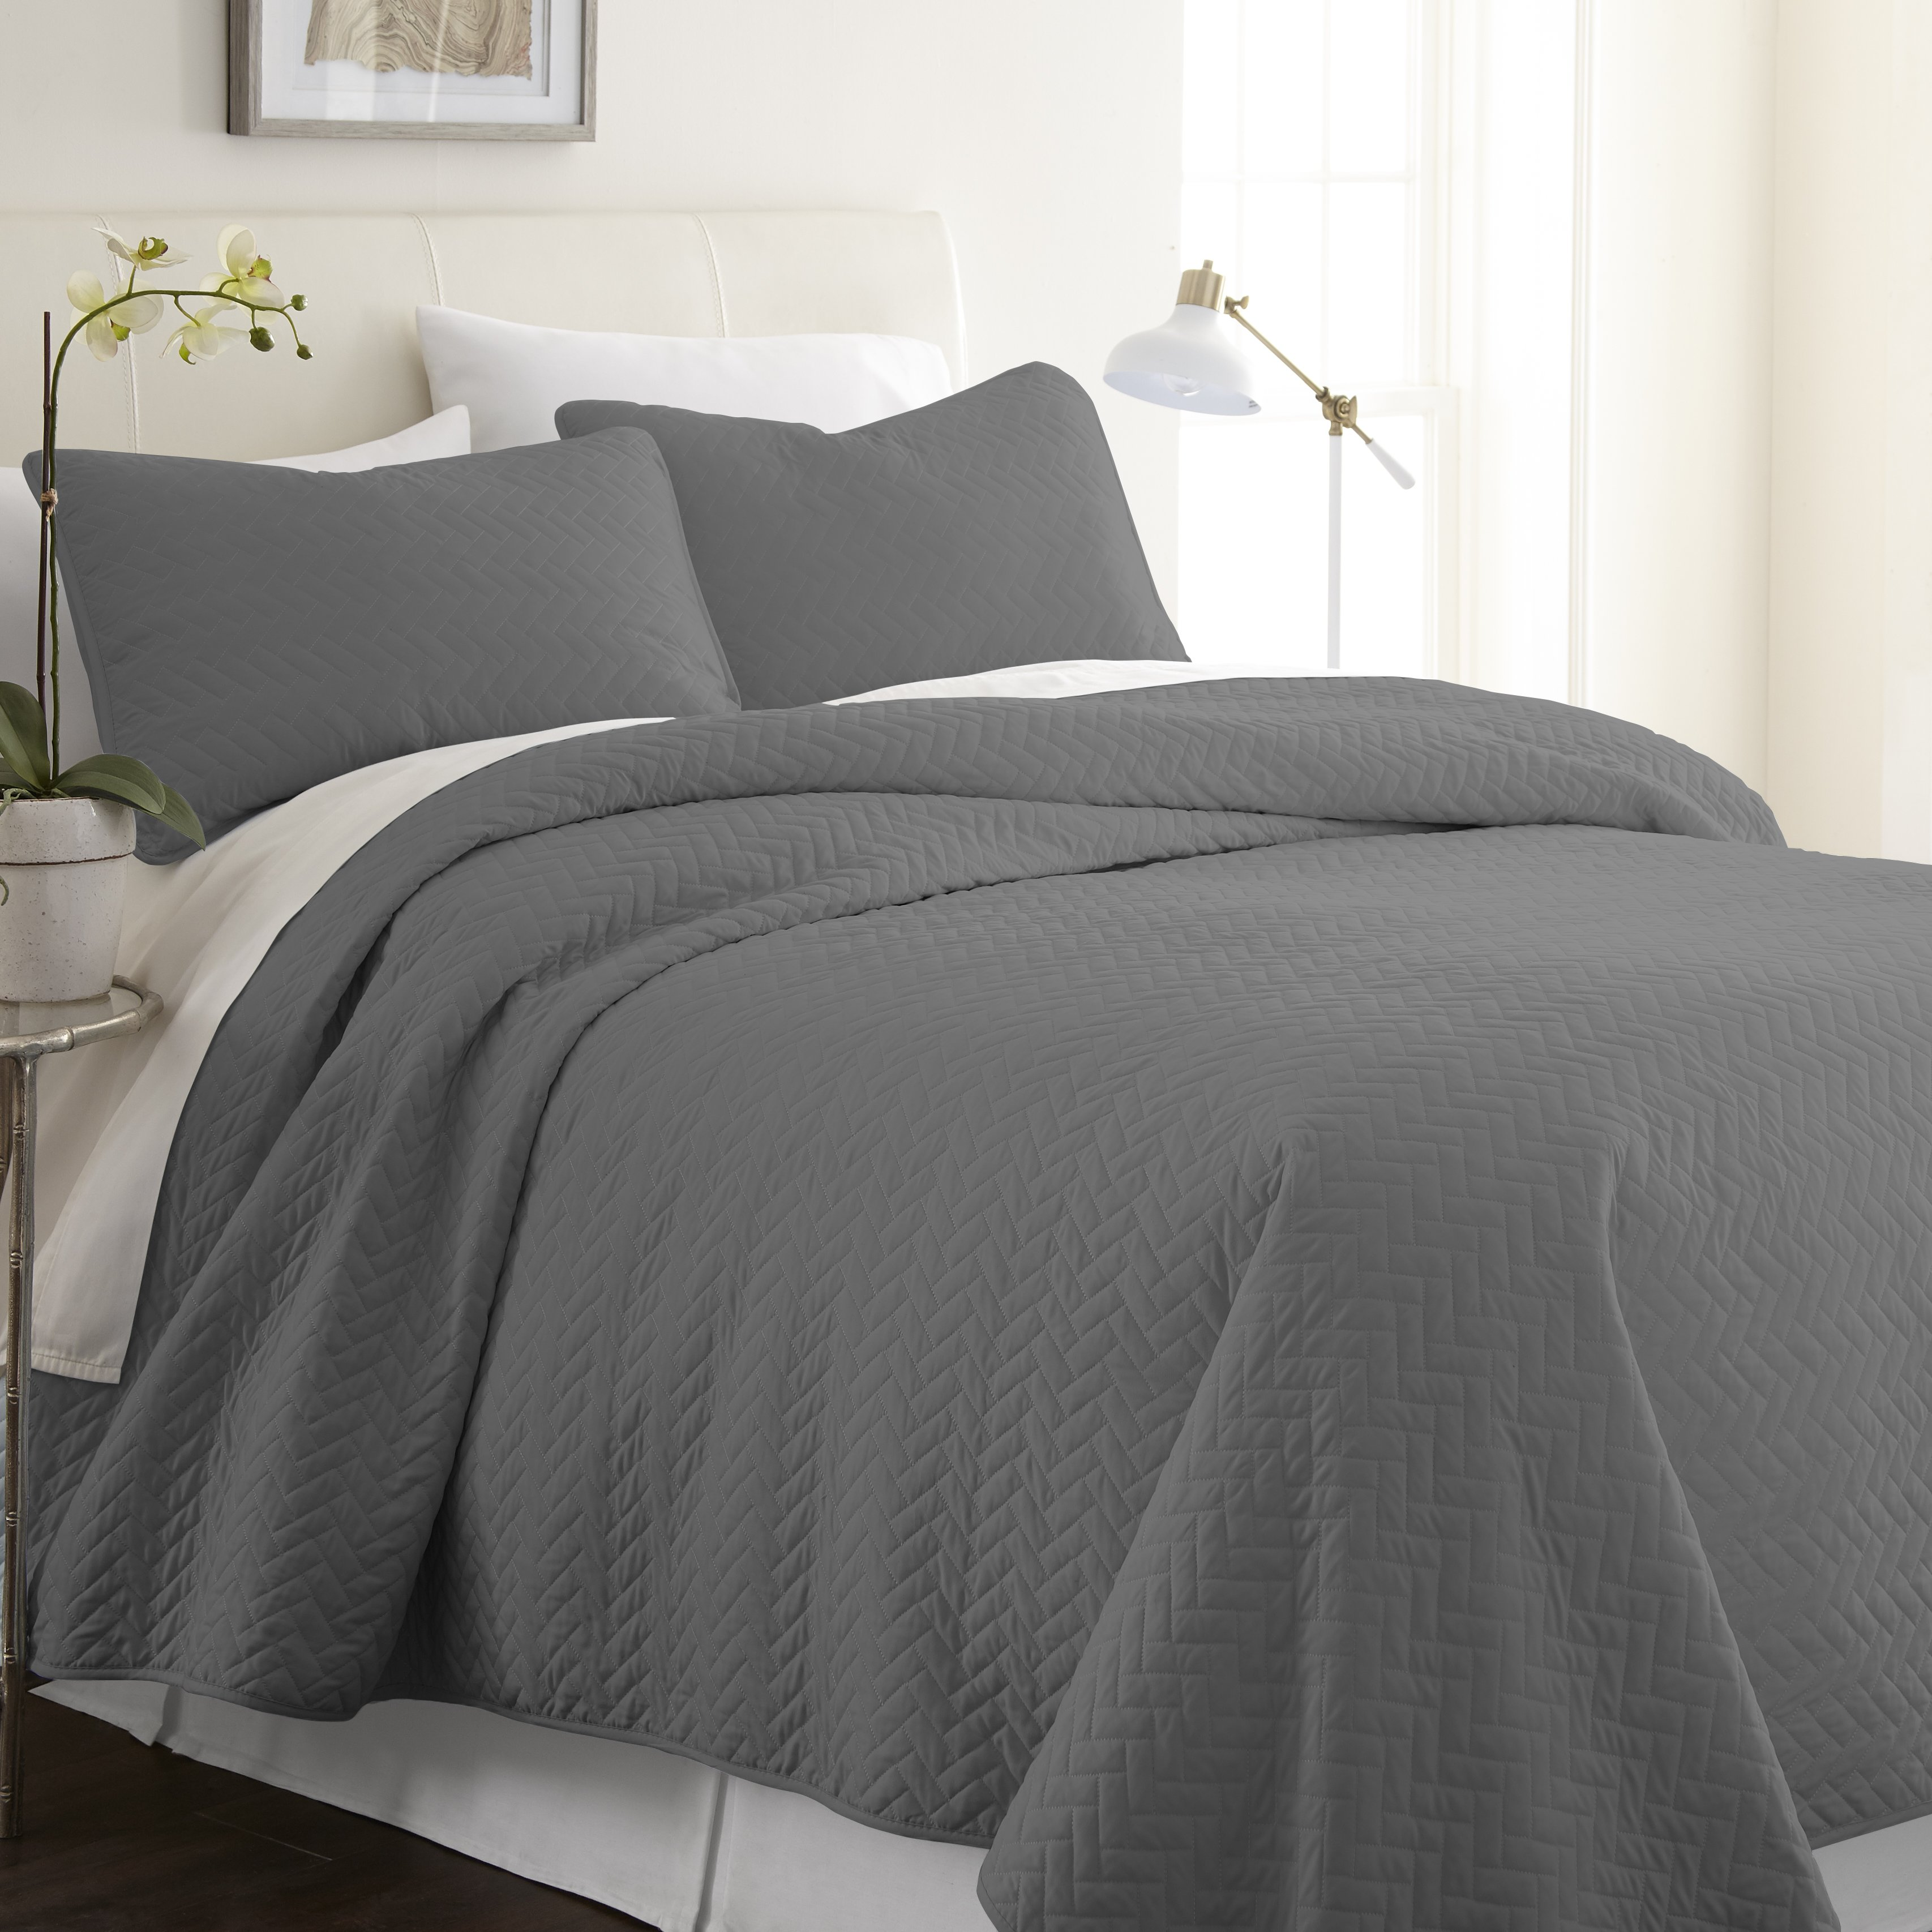 3 Piece Herring Quilted Coverlet Set Quilt Sets Queen Quilt Home Collections